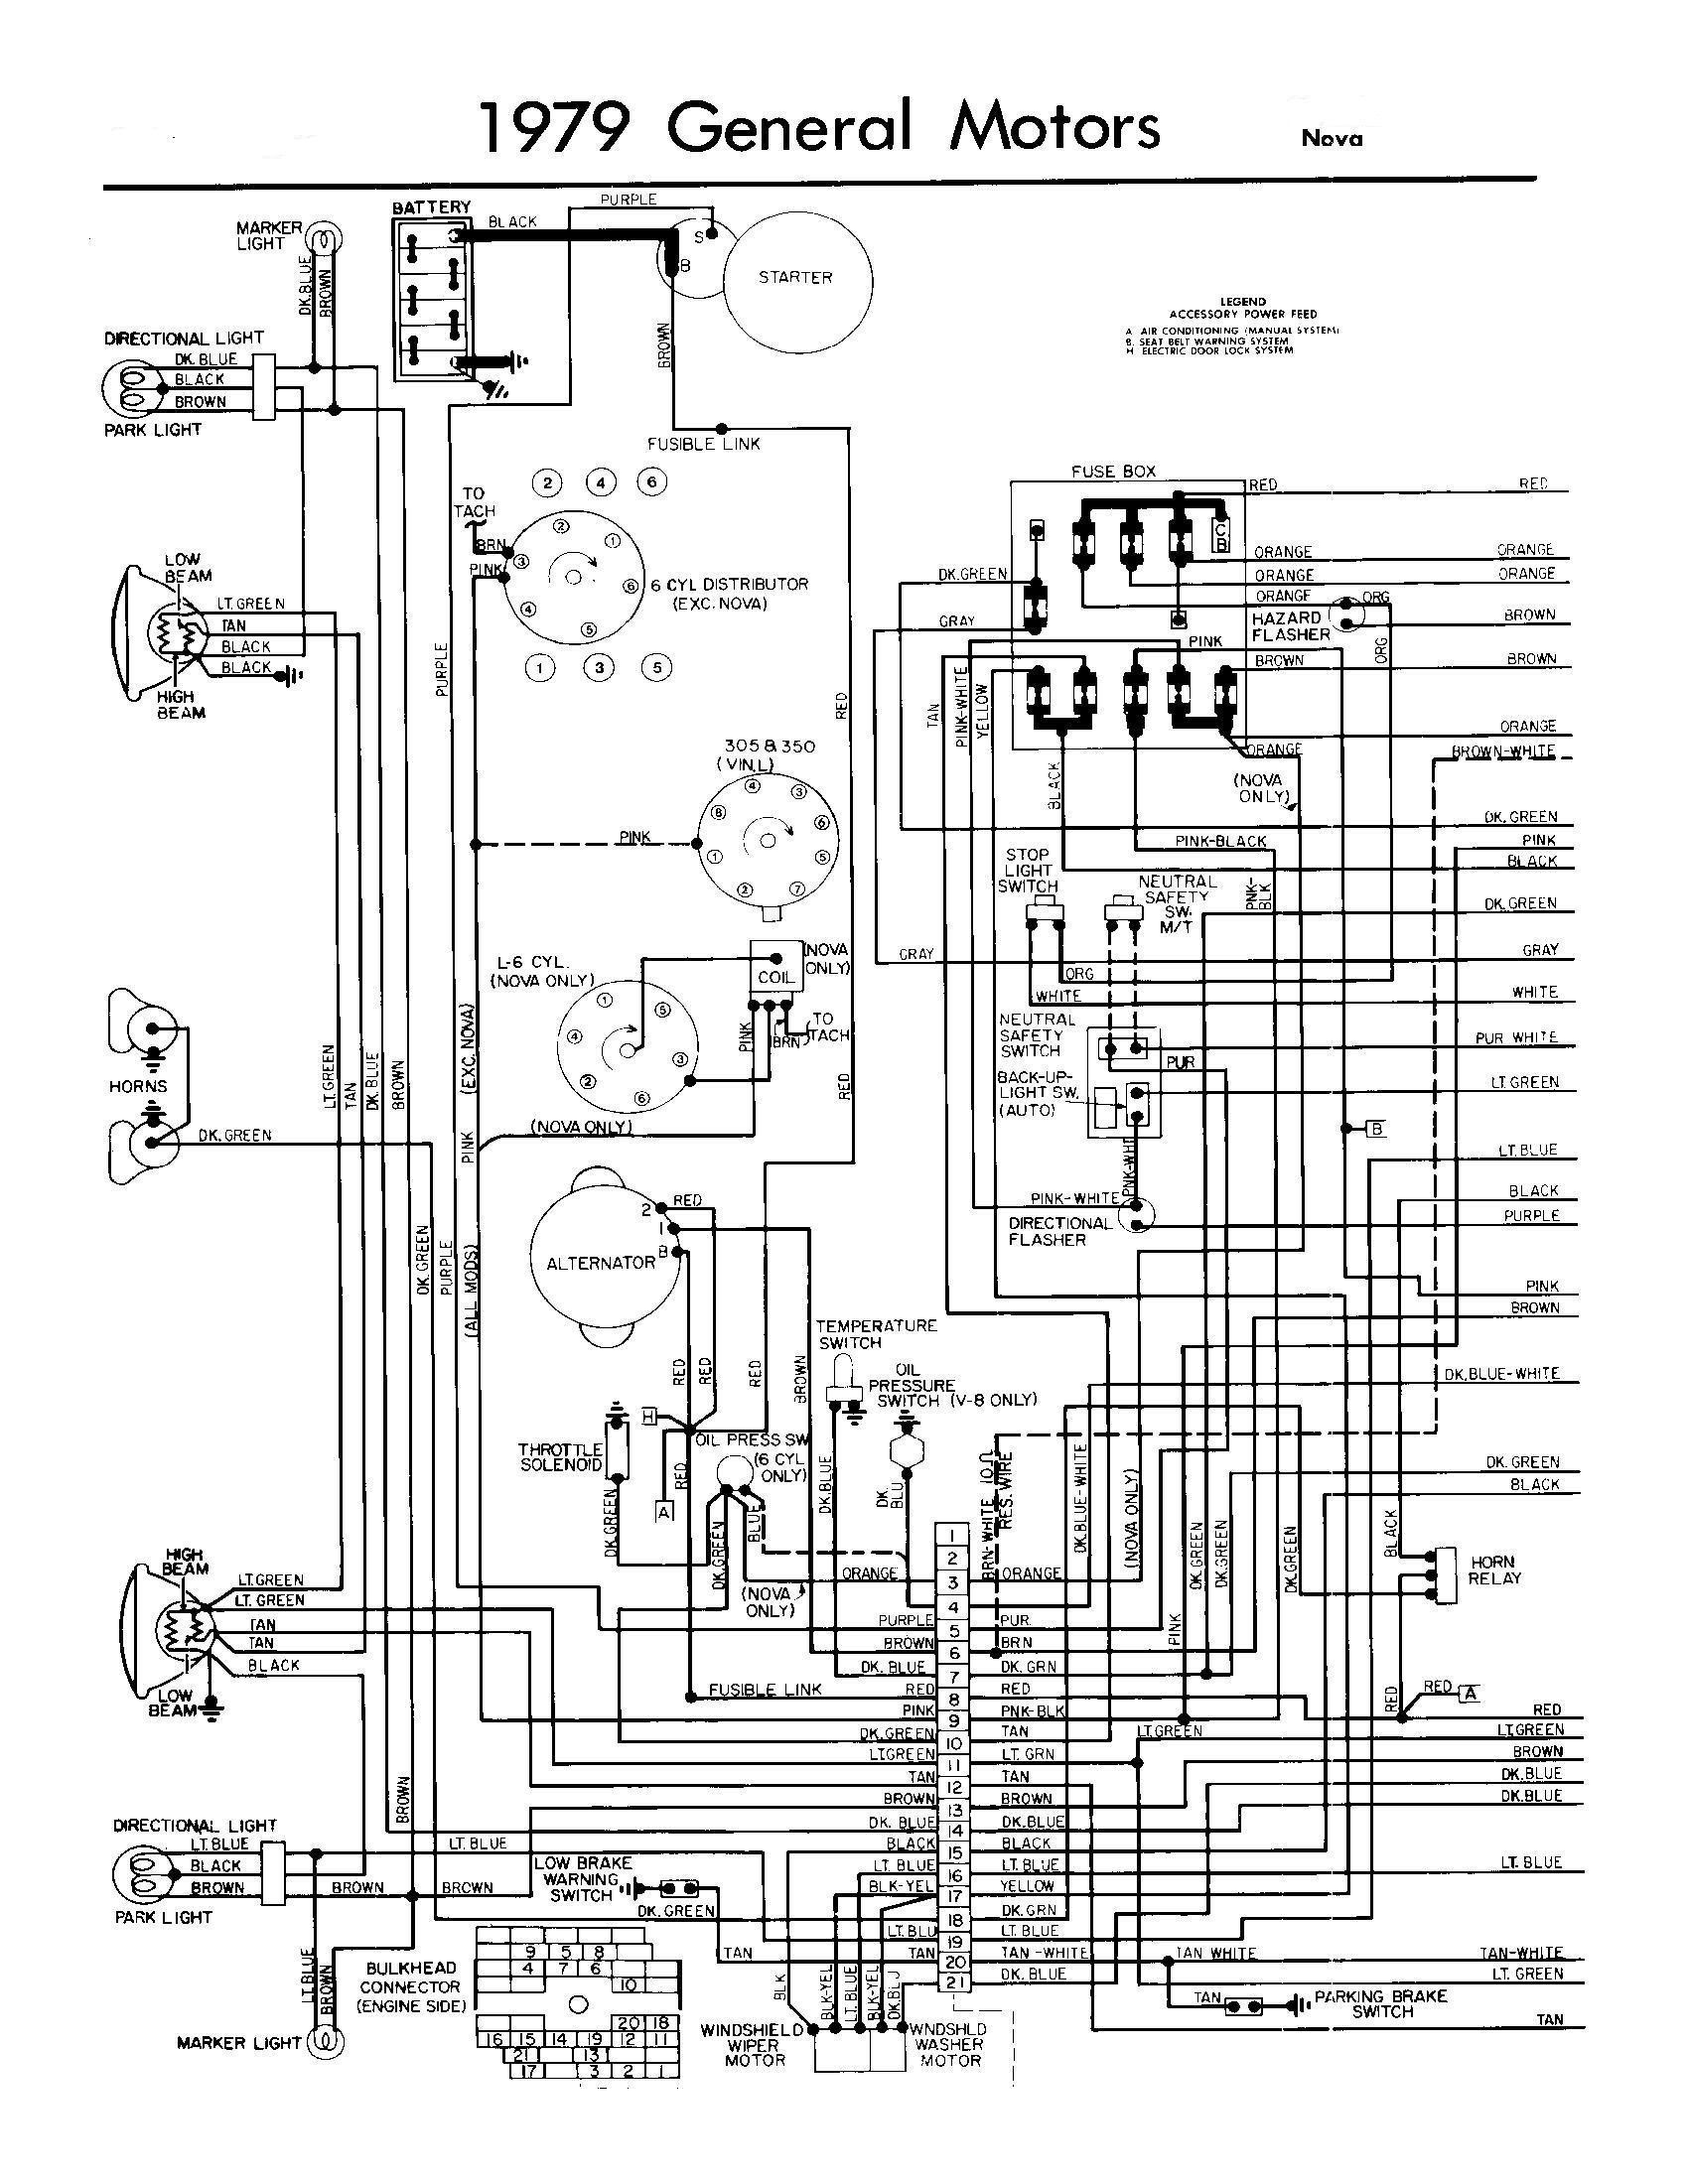 1986 Camaro Fuse Box Diagram Wiring Libraries 1992 Iroc Z28 1972 Schematic Diagrams Scematic1972